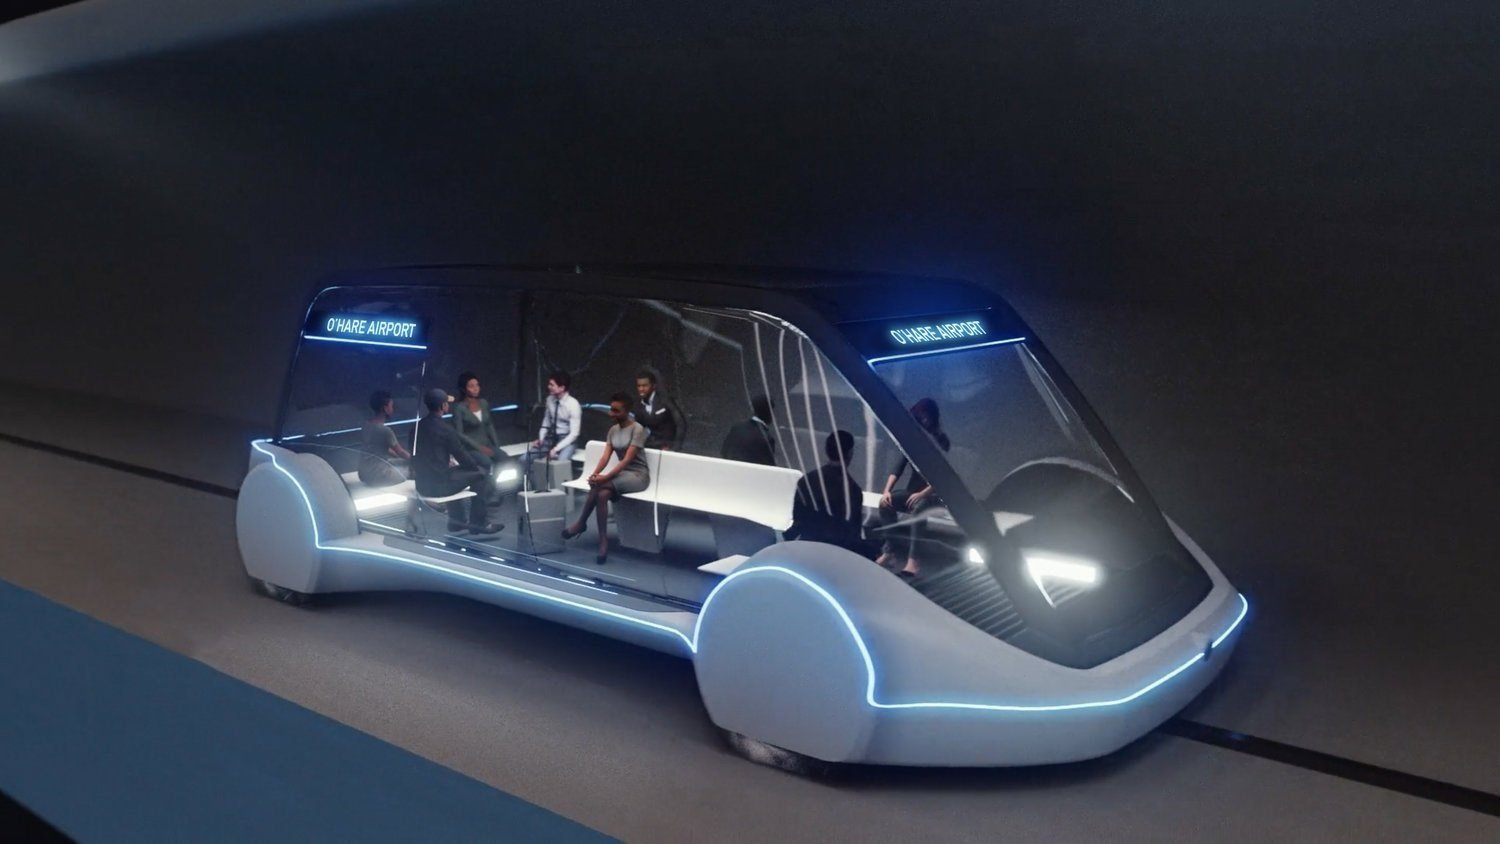 Chicago has picked Elon Musk's Boring Company to build a futuristic transportation link to the city's airport.